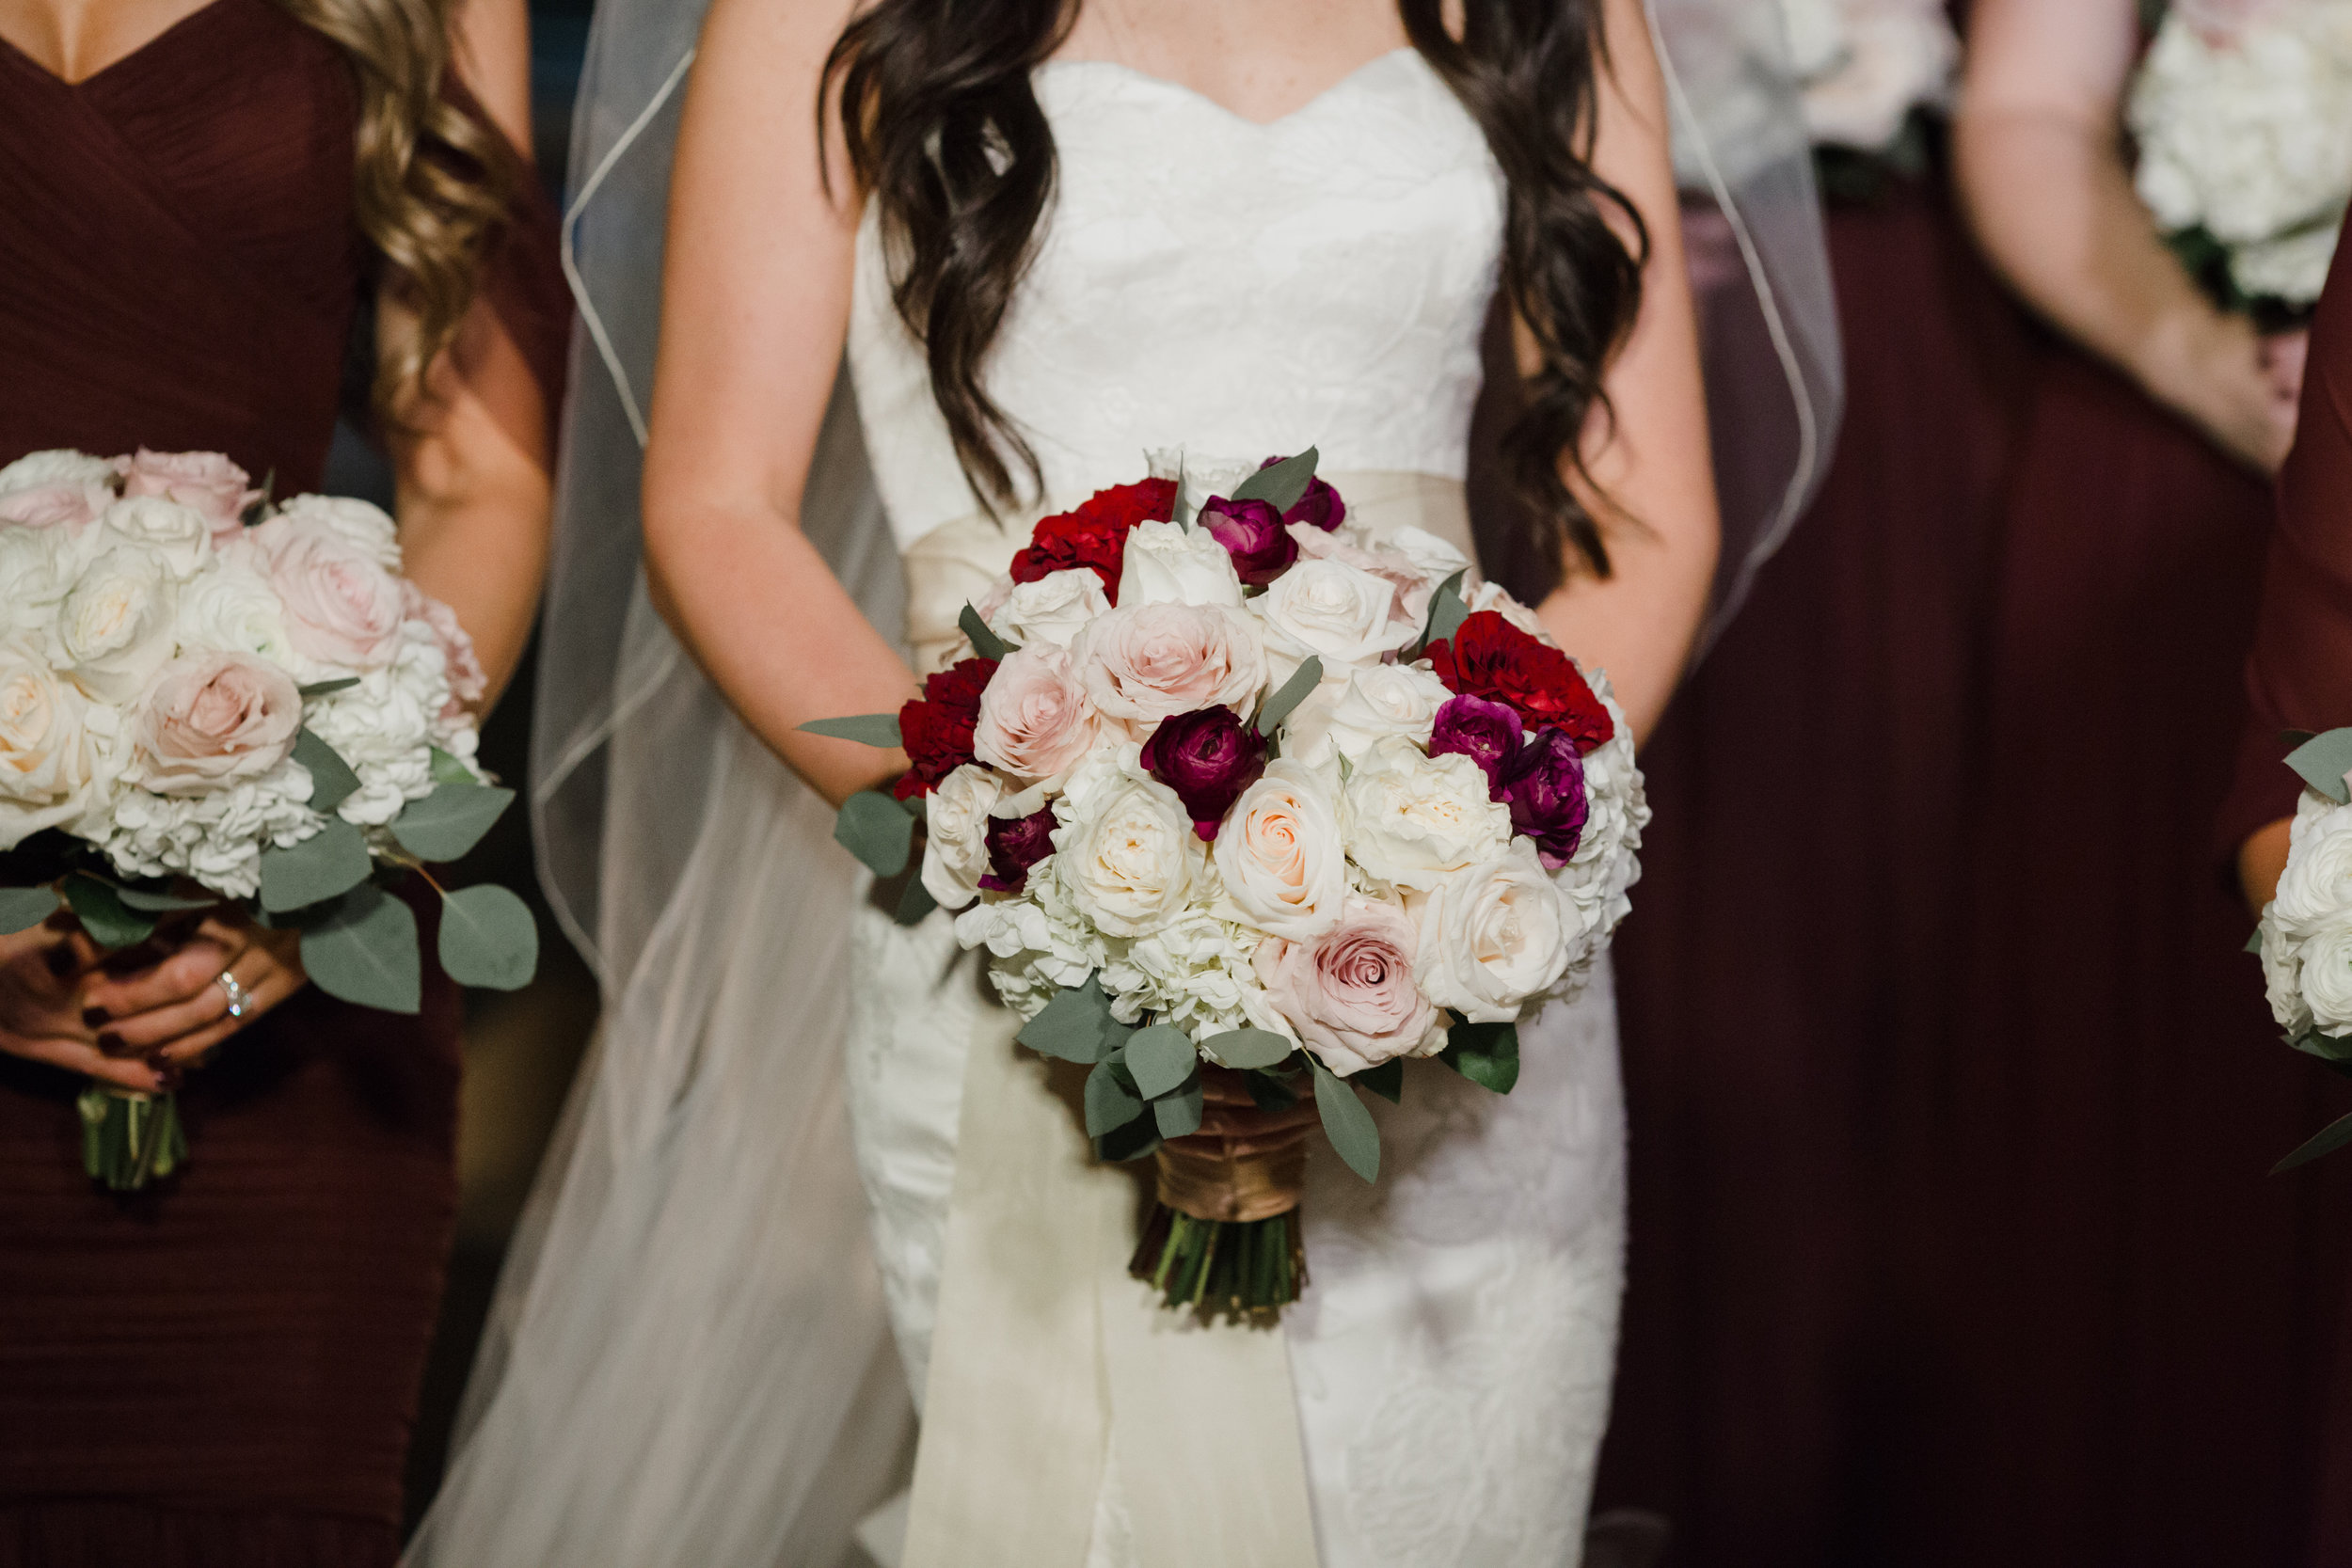 Ivory and oxblood wedding colors with bridal bouquet.Luxury wedding at the Mandarin Oriental with a color scheme of white, blush, and pops of wine red produced by Las Vegas Wedding Planner Andrea Eppolito with photos by Stephen Salazar Photography.